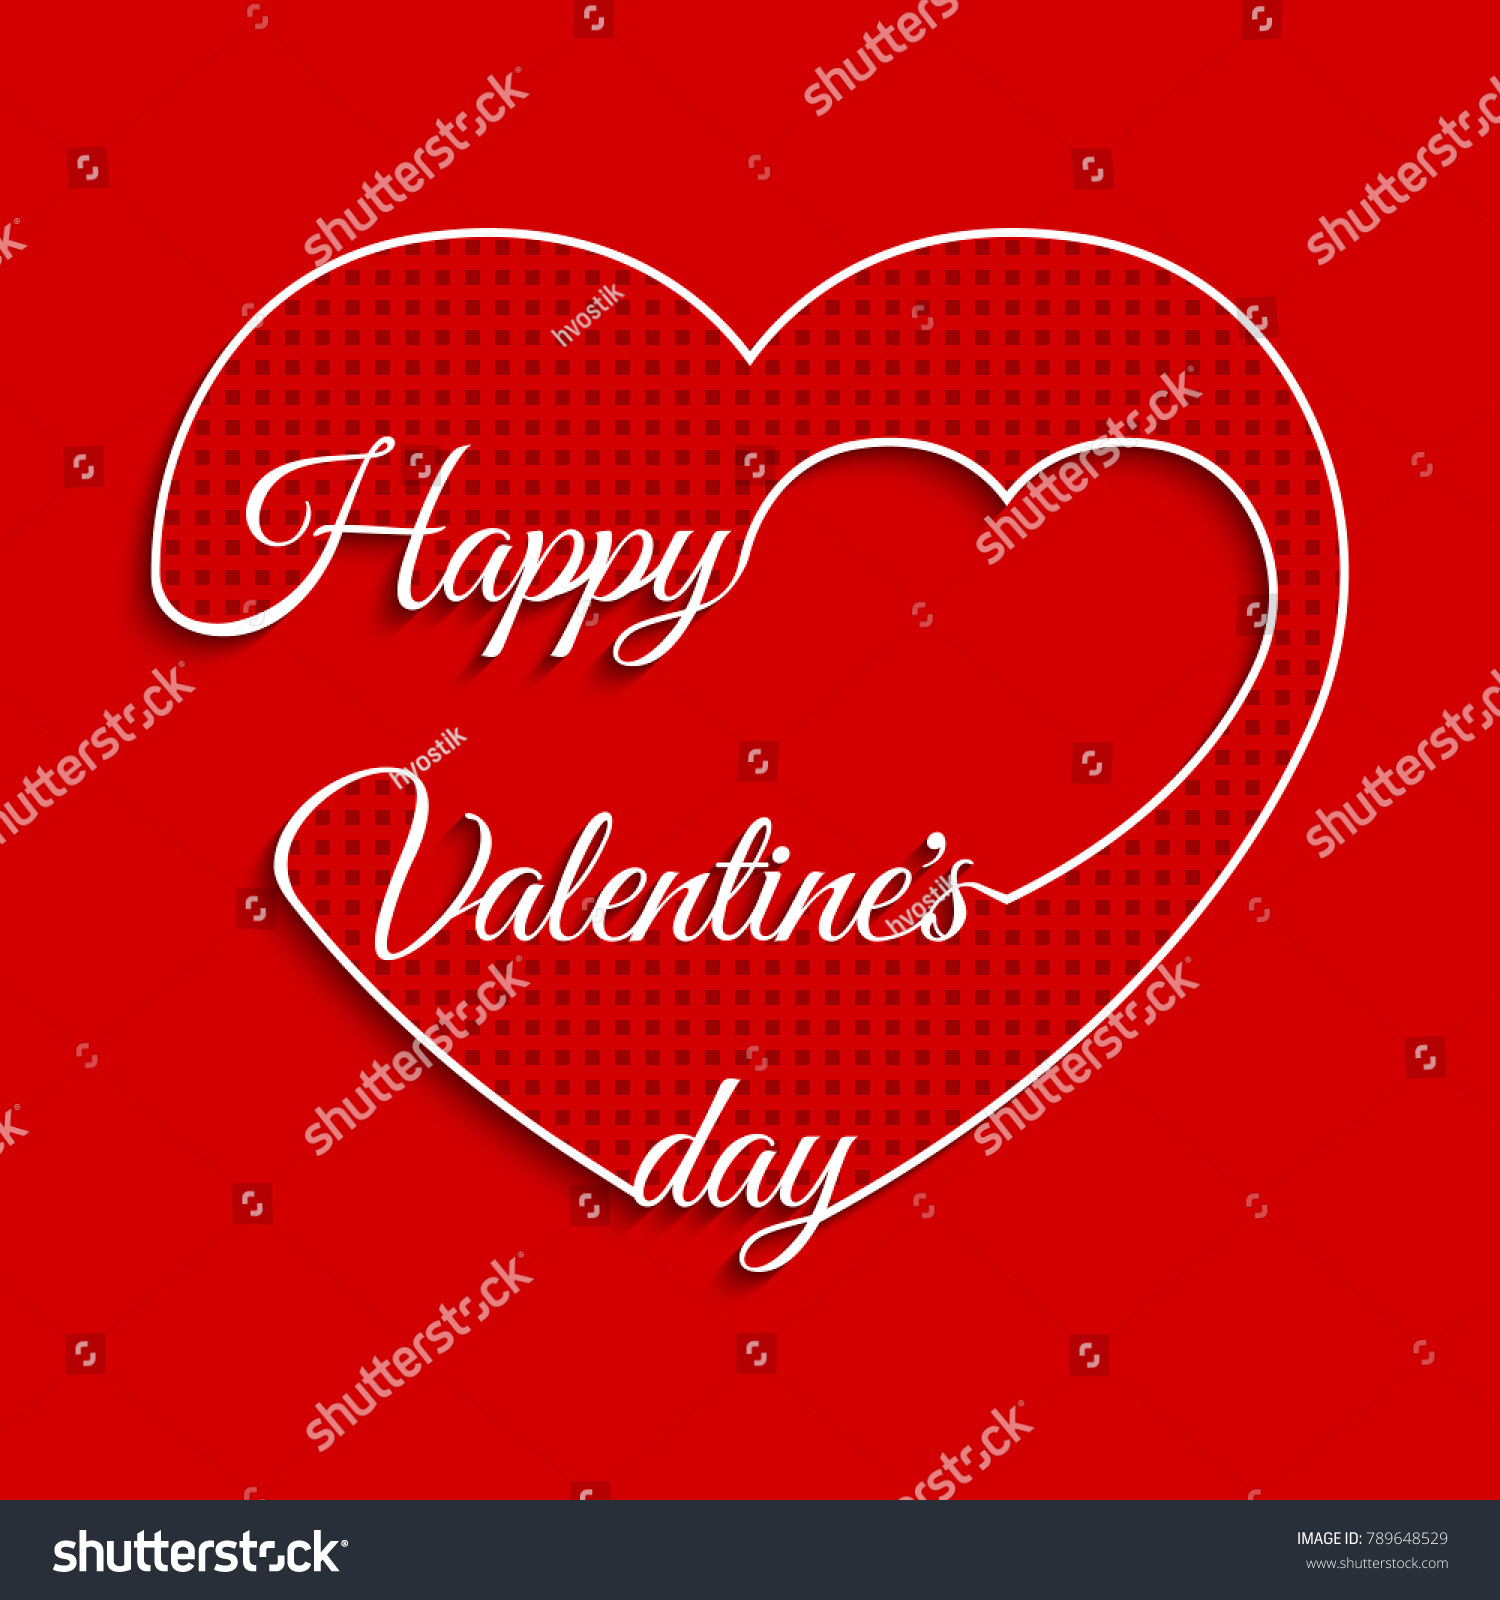 Valentines Day Cards Love Card Valentines Stock Illustration